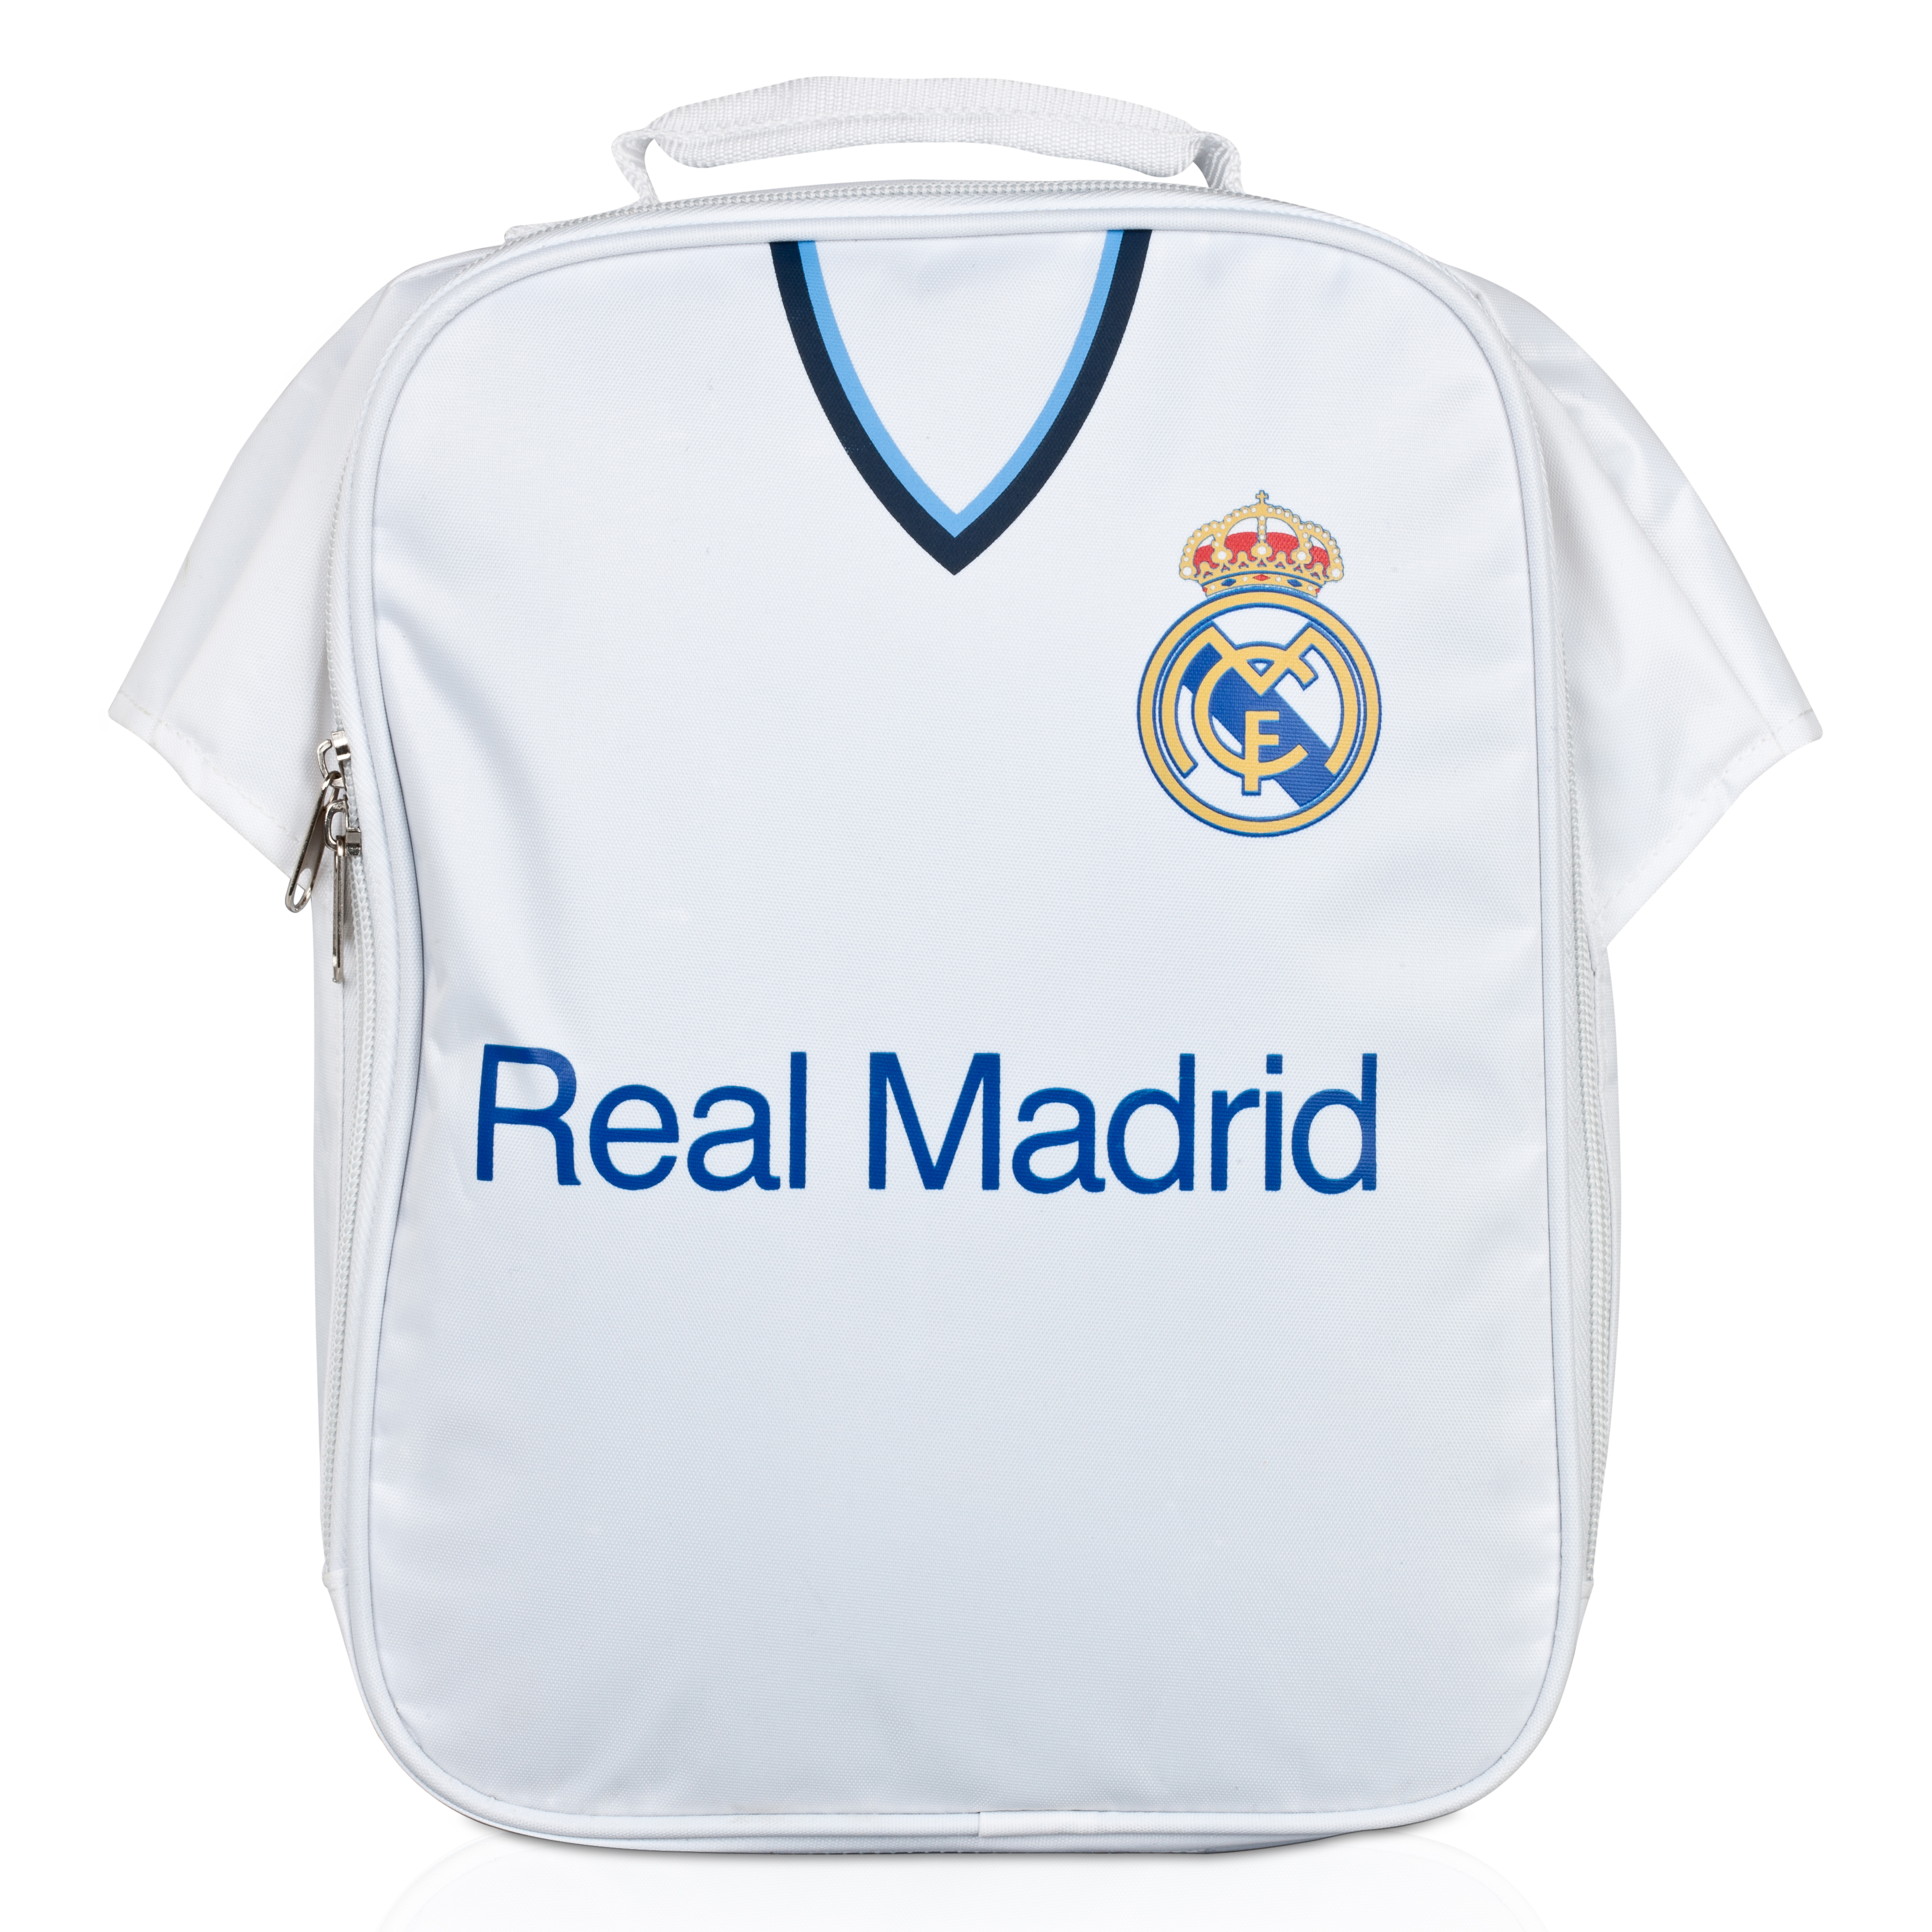 Real Madrid Shirt Shaped Lunch Bag